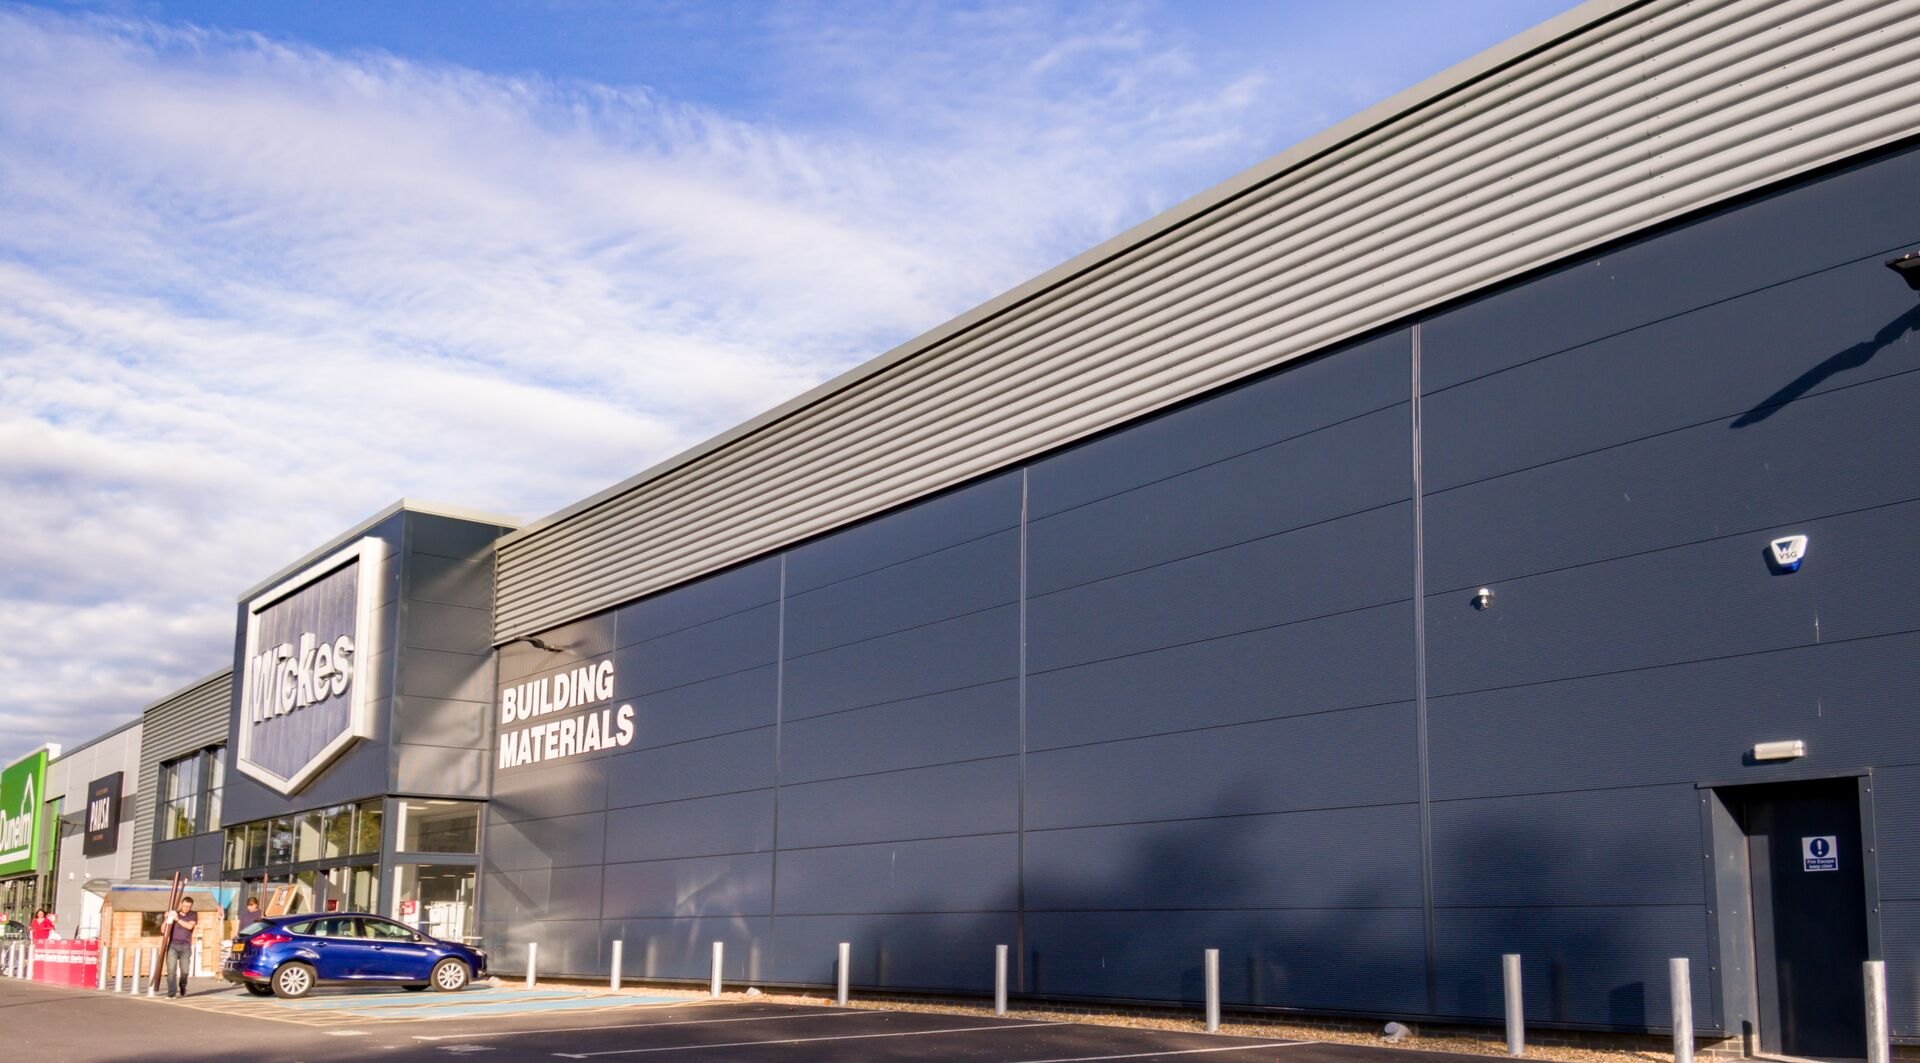 Wickes DIY store in UK showcasing Colorcoat Aquatite gutters, Trisomet roof and Trimapanel walls